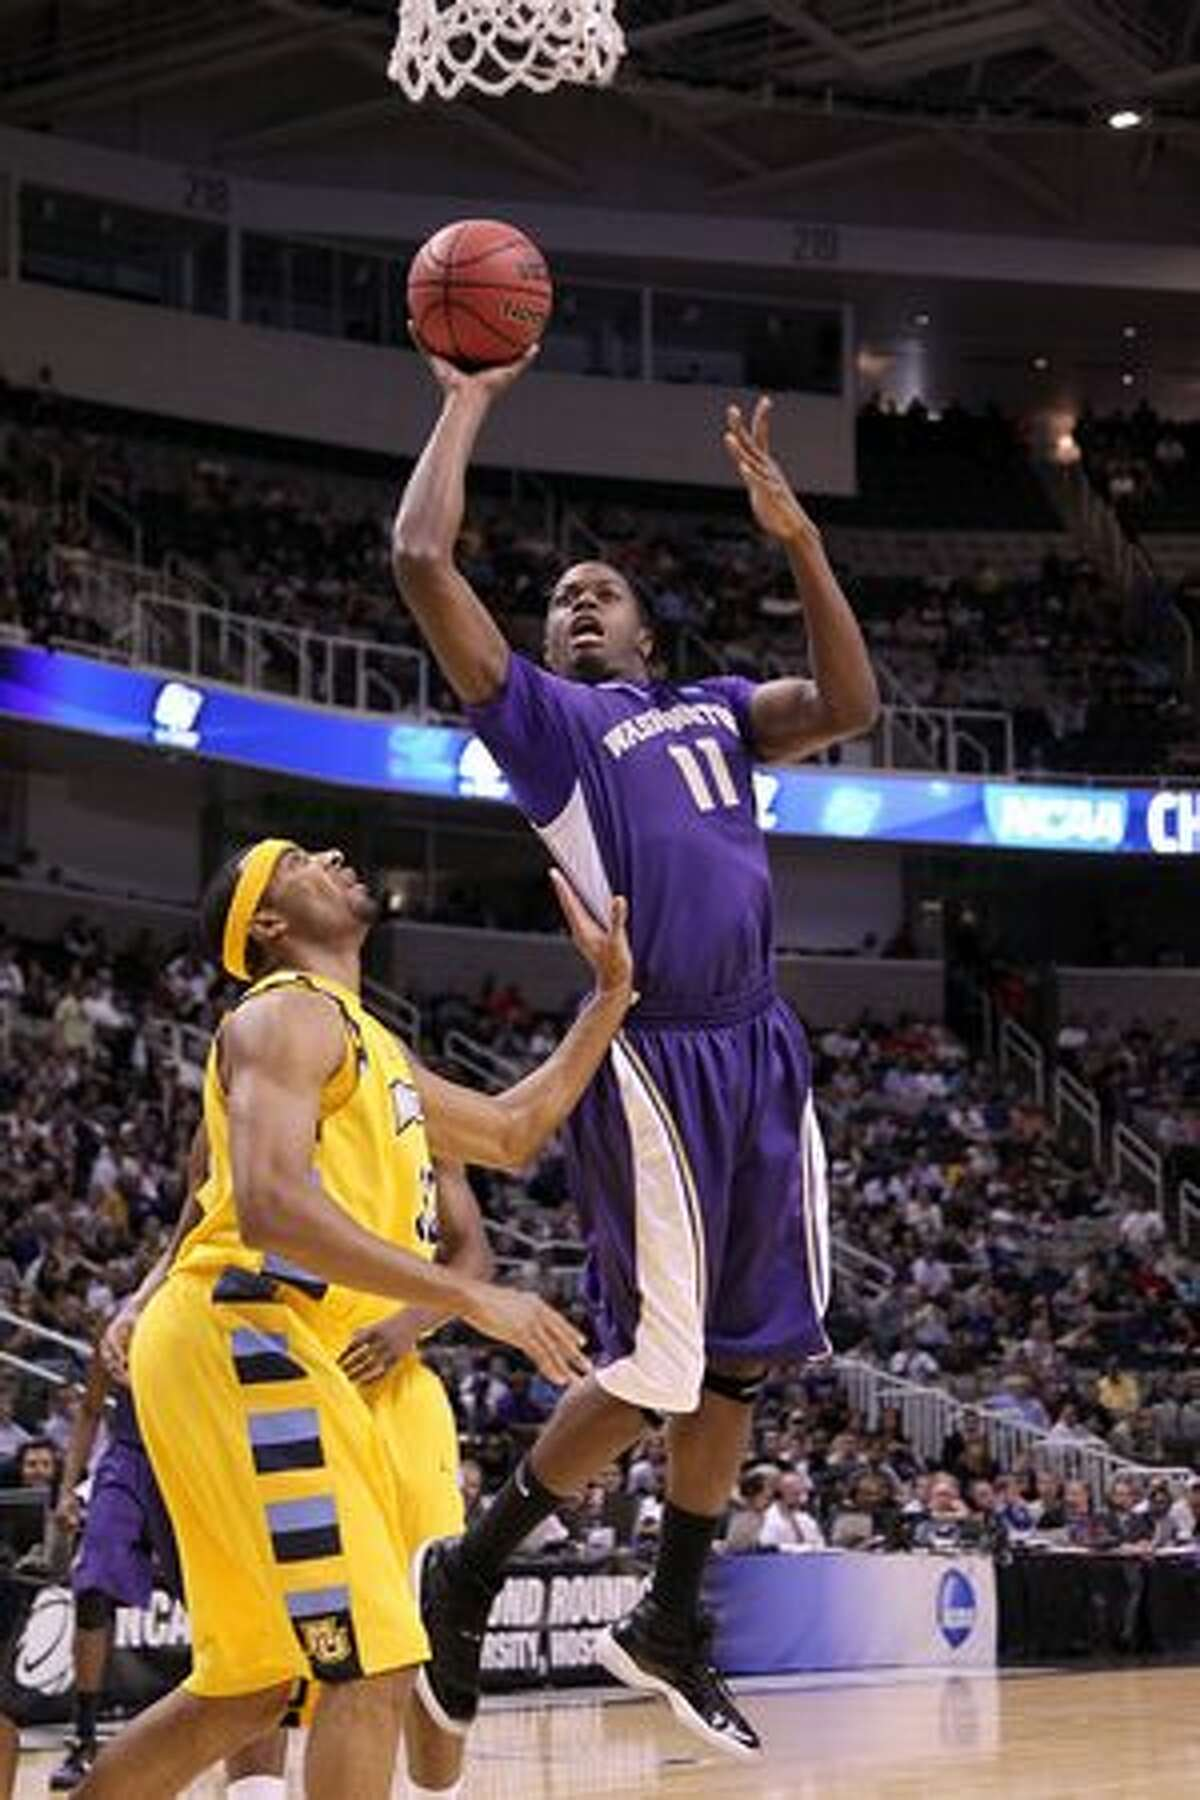 Forward Matthew Bryan-Amaning #11 of the Washington Huskies goes up for a shot against the Marquette Golden Eagles.